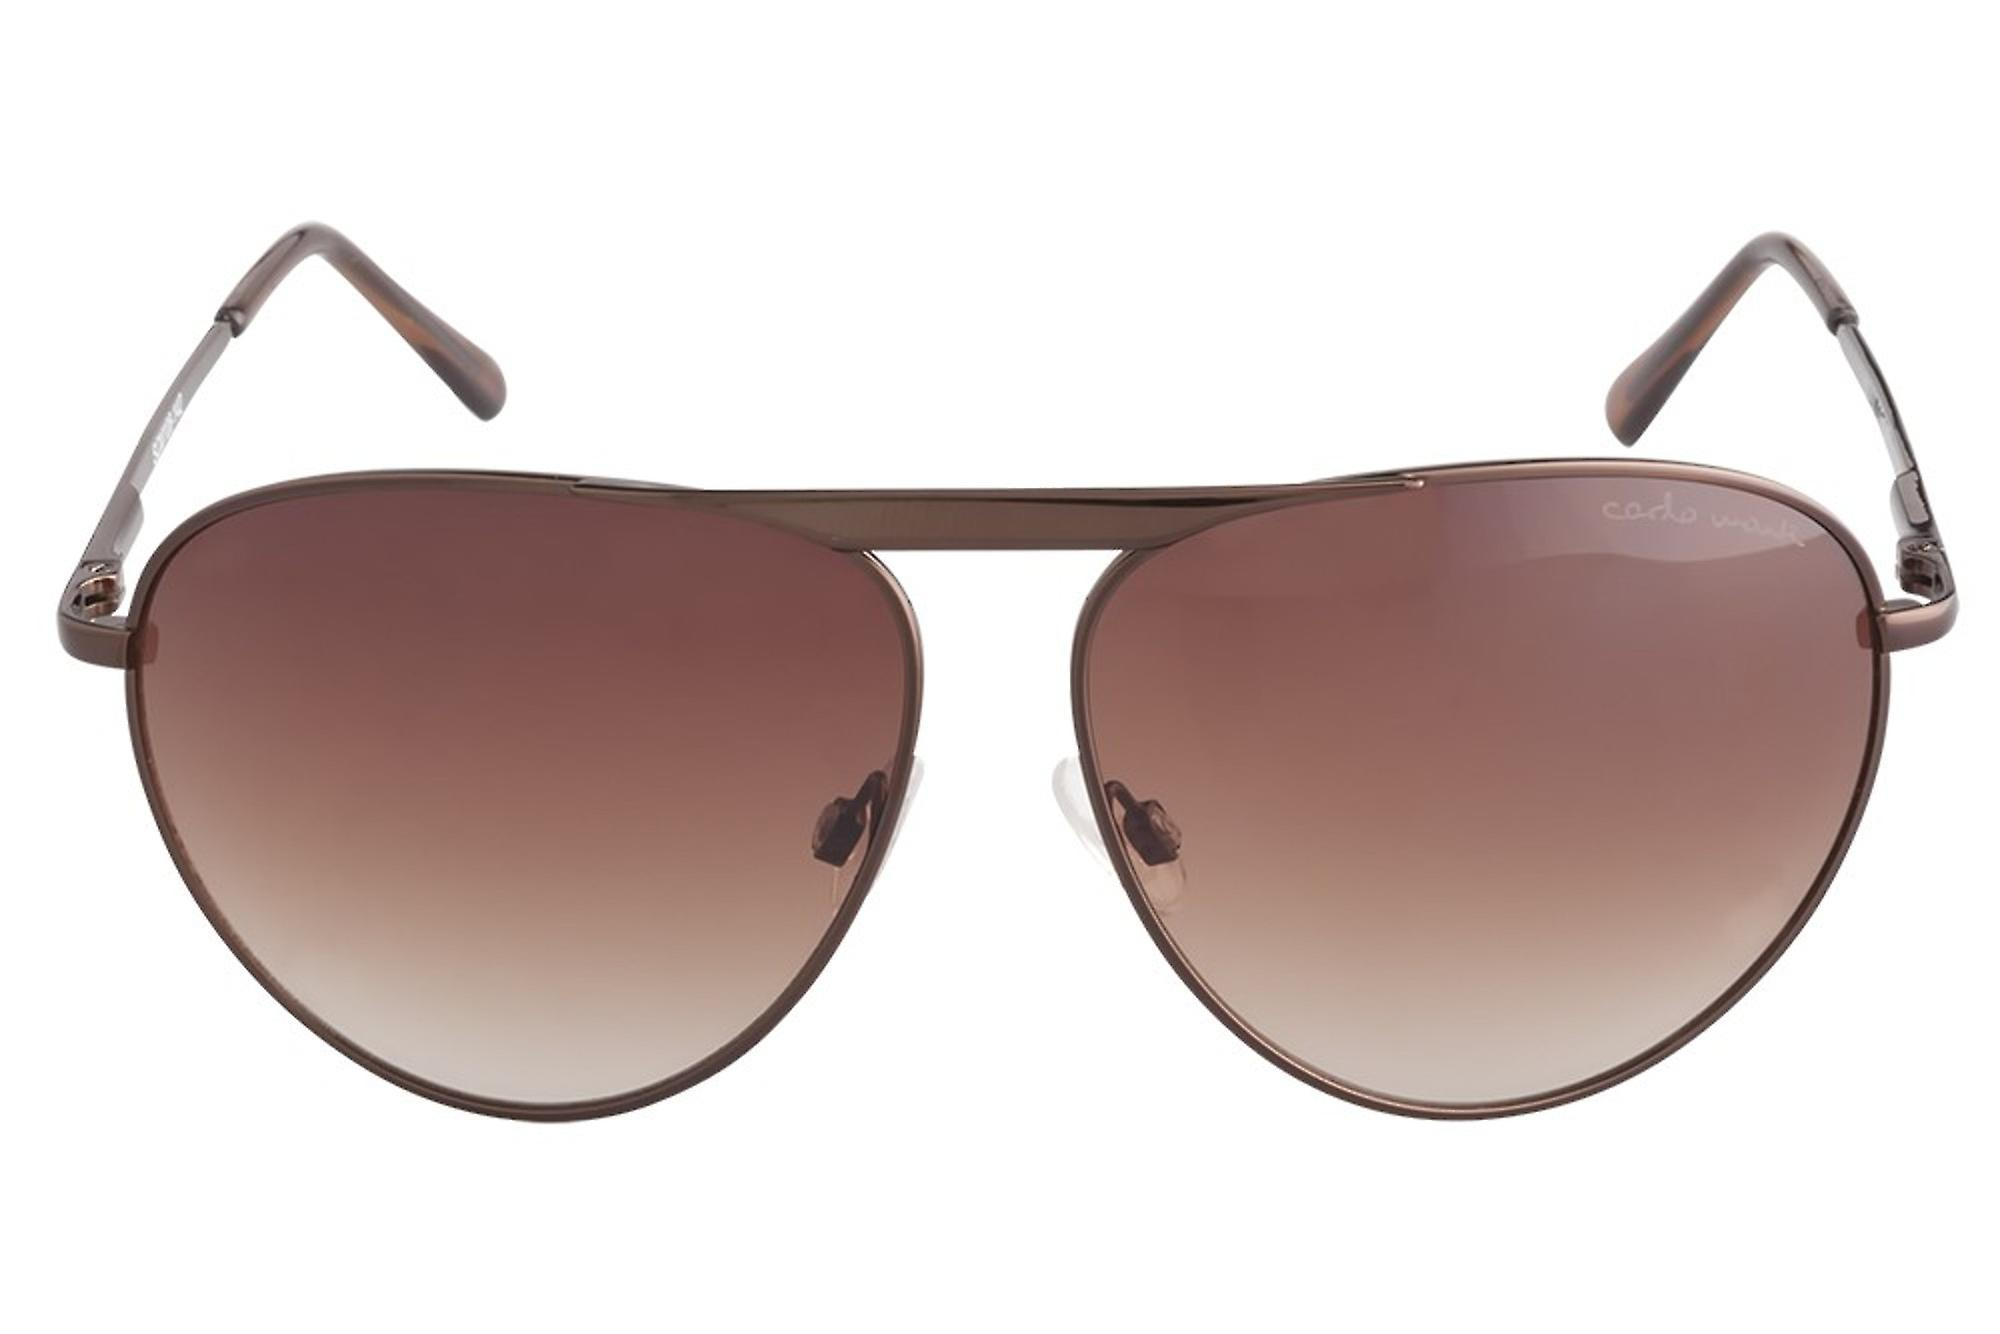 Classic sunglasses for men by Carlo Monti with 100% UV protection | sturdy metal frame, high quality sunglasses case, microfiber glasses pouch and 2 year warranty | SCM108-142 Modena